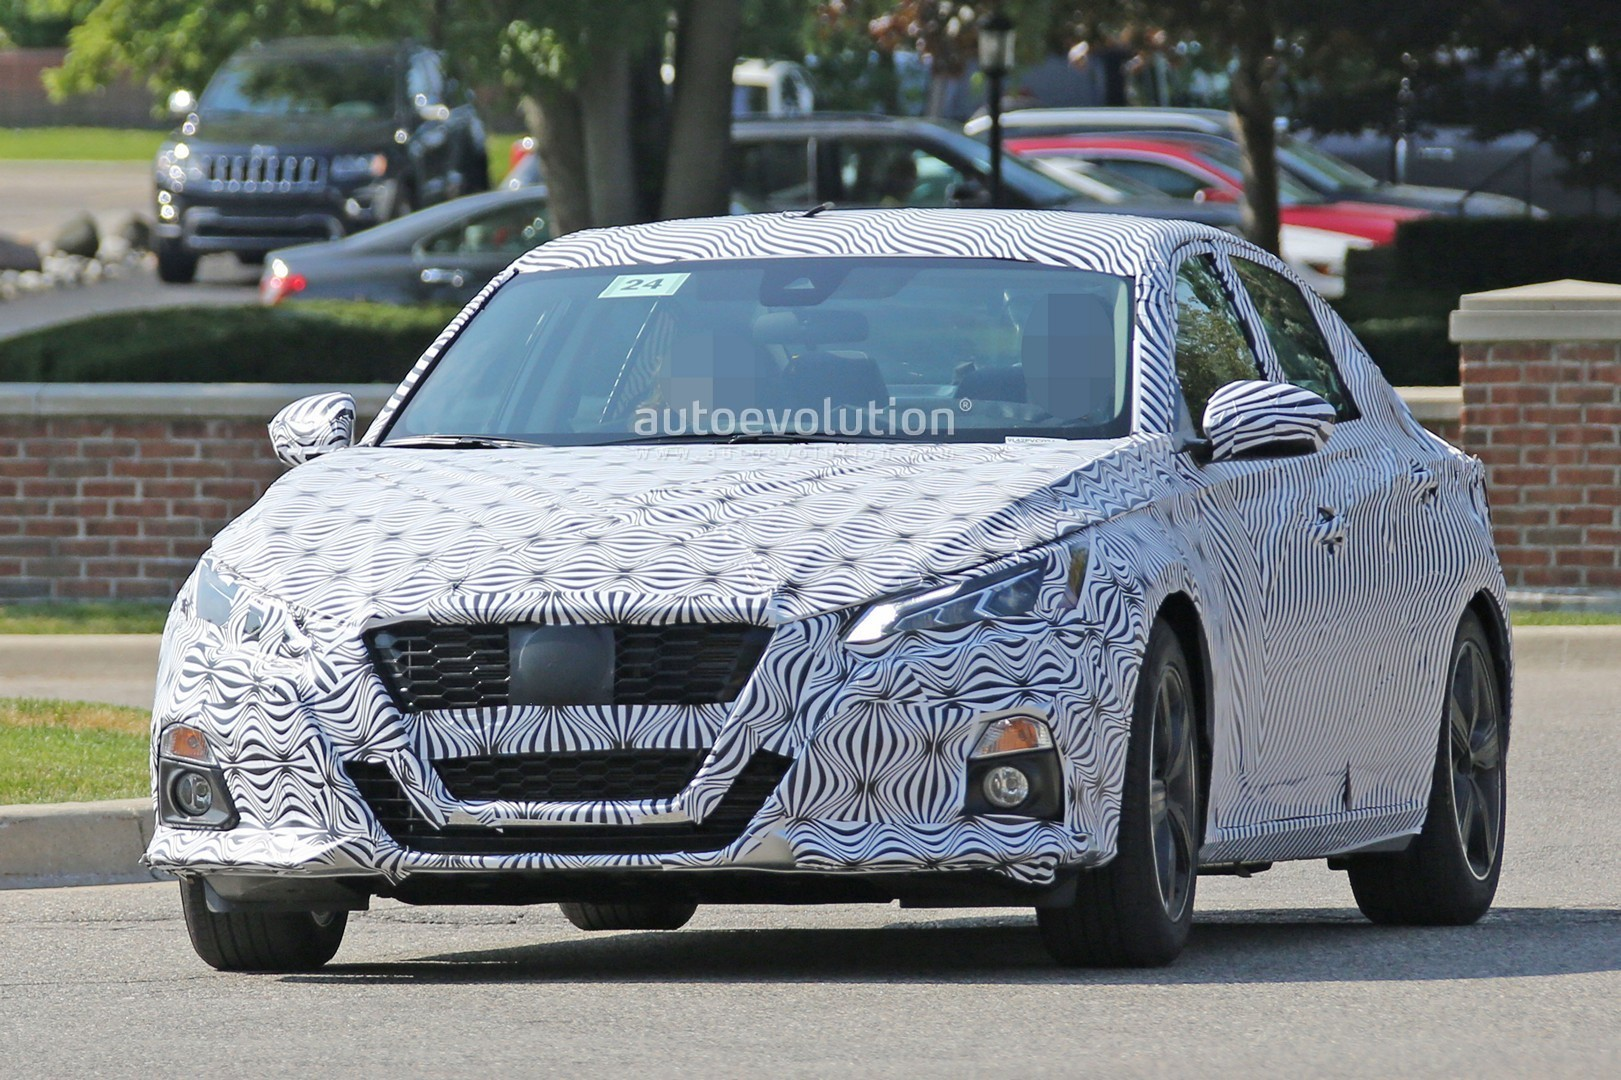 Spyshots: 2019 Nissan Altima Shows Interior, Model Targets ...